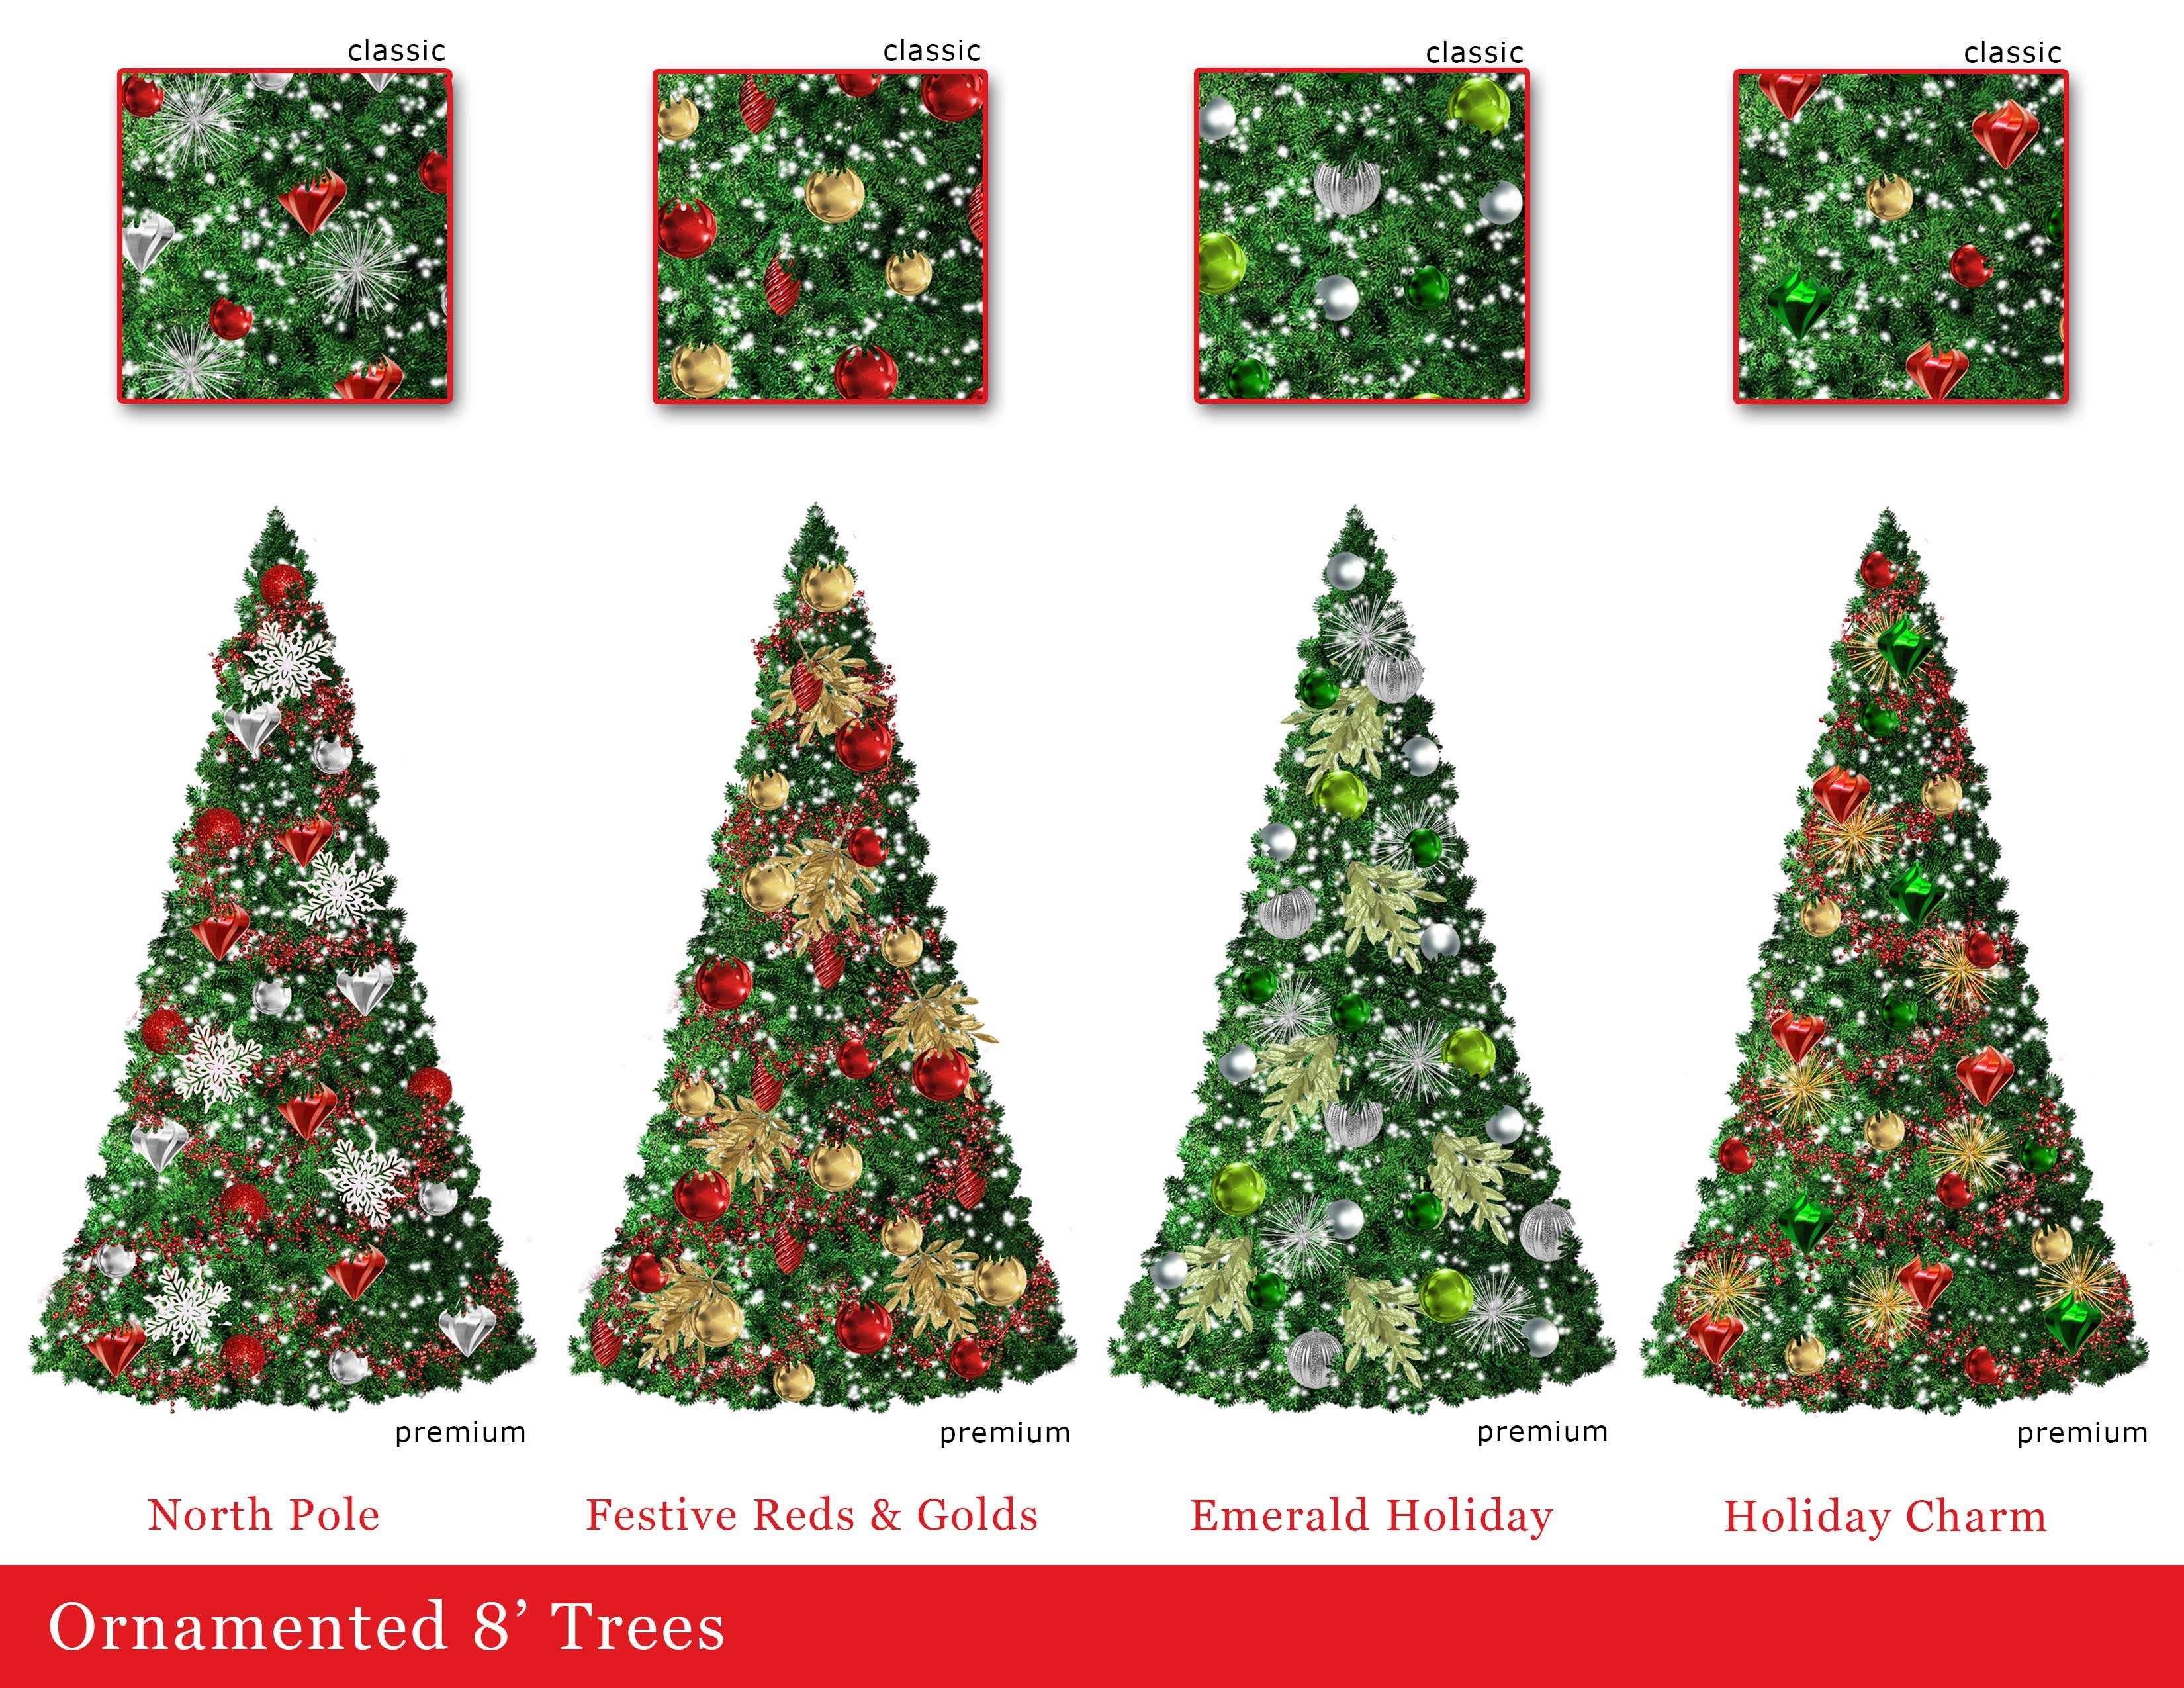 of ways delightful cheer wholesale in decorations all d lit and litdisplaybanner decor to christmas cor whimsical displays light commercial your lite outdoor dekra give our